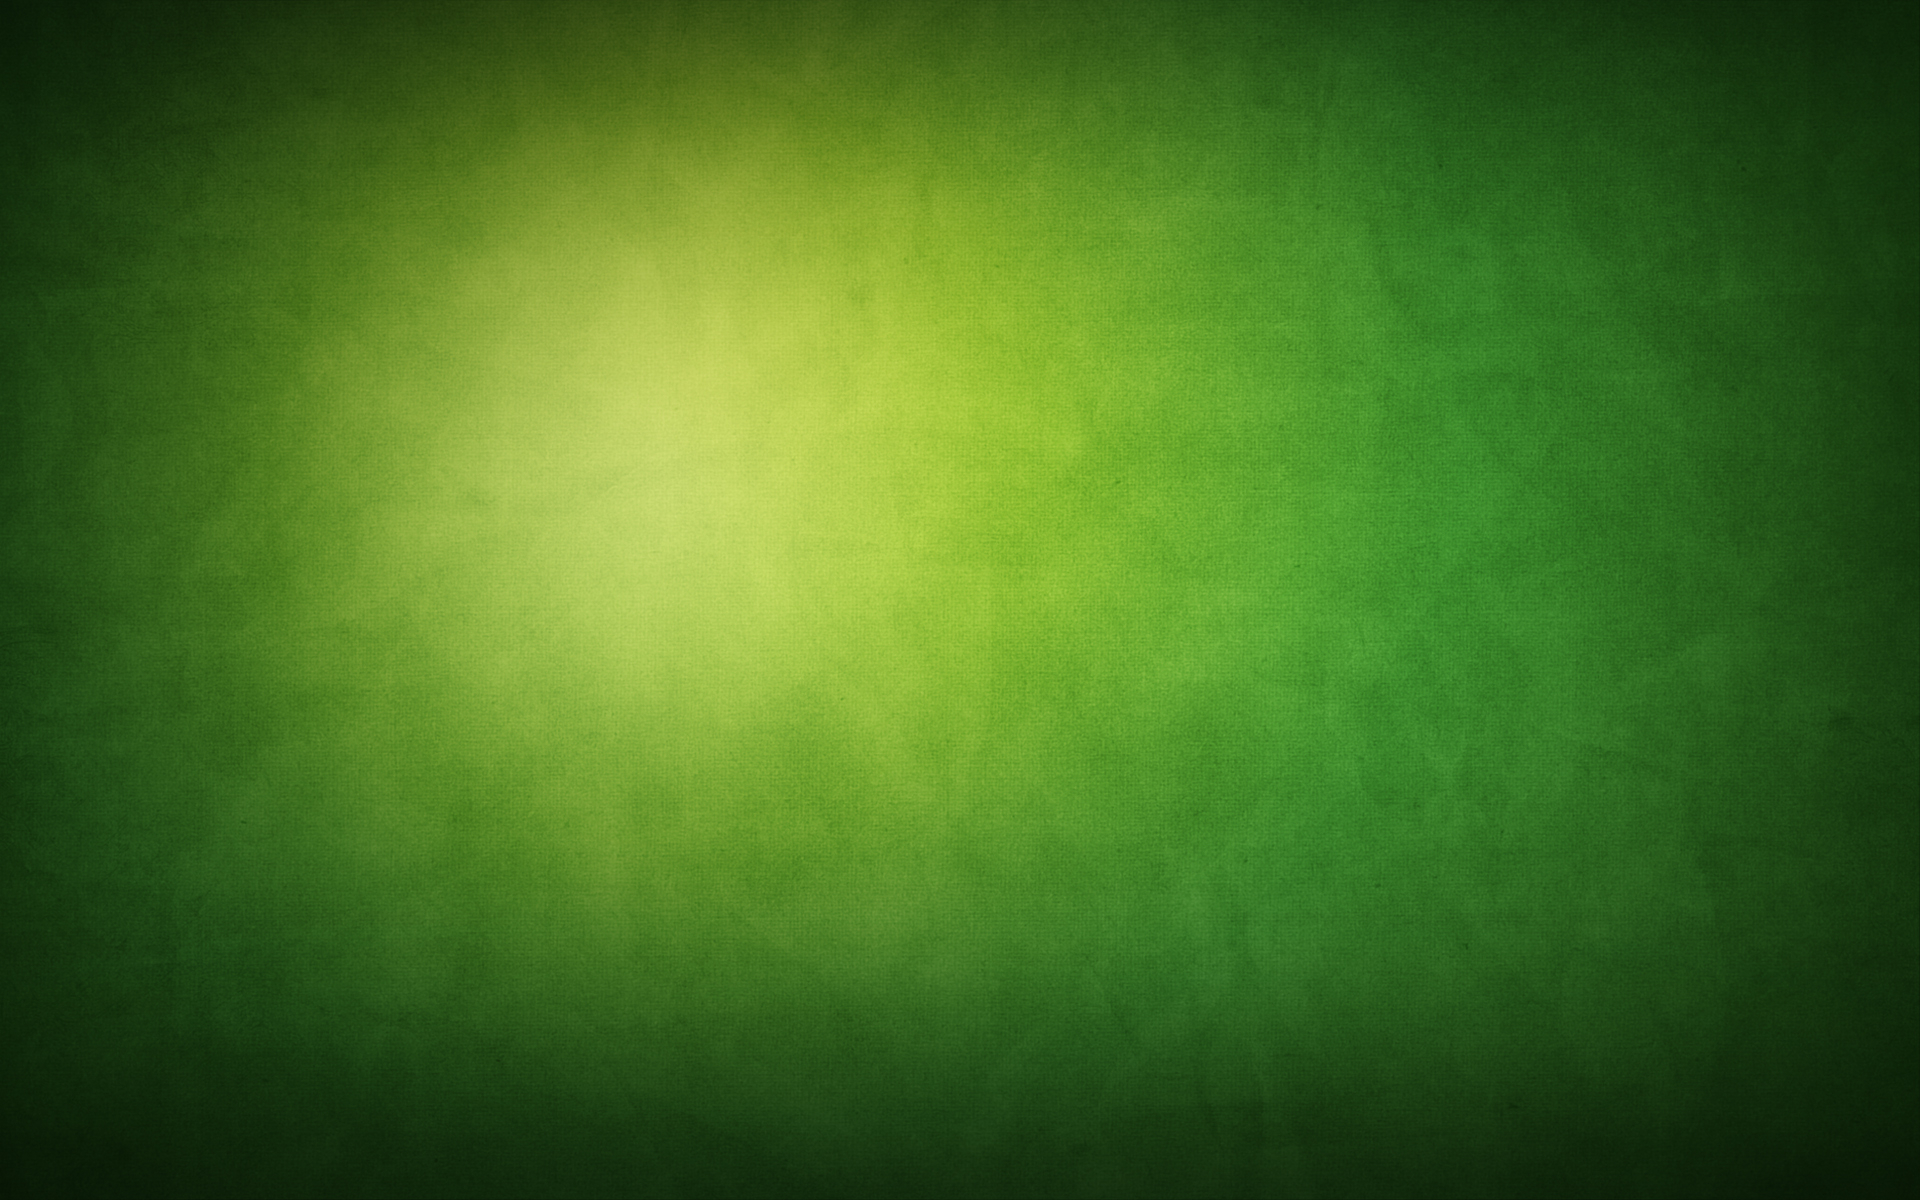 ... Green Wallpaper 3 ...